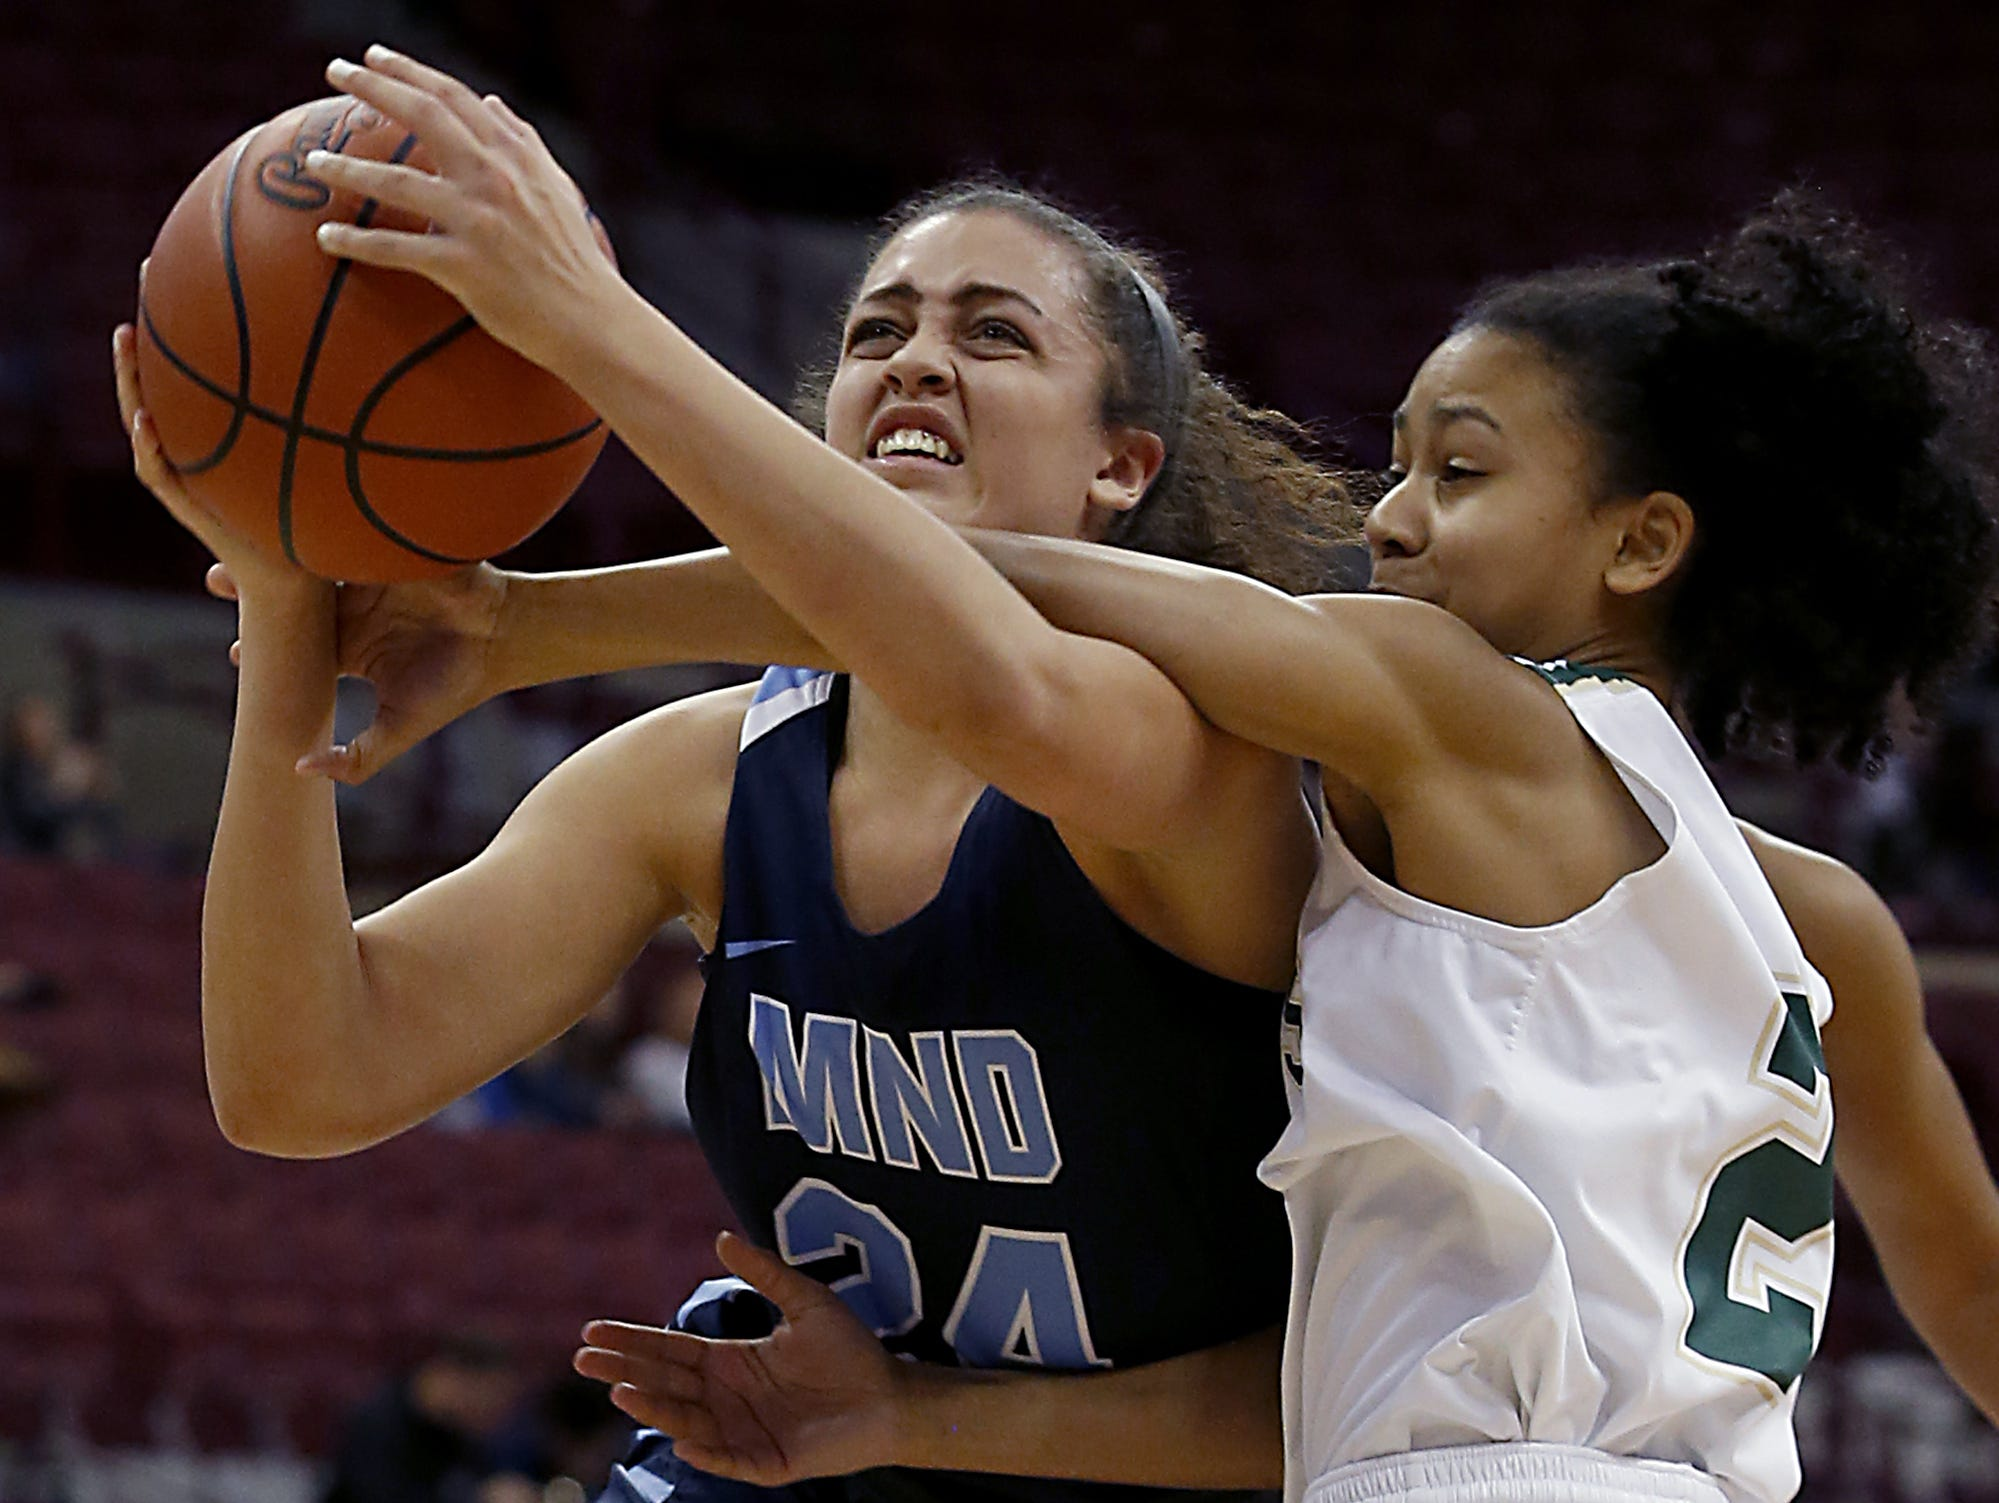 Mount Notre Dame guard Gabbie Marshall is fouled by GlenOak guard Brielle Williams during their Division I semifinal game in the 44th Annual State Girls Basketball Tournament at the Schottenstein Center in Columbus Friday, March 15, 2019.